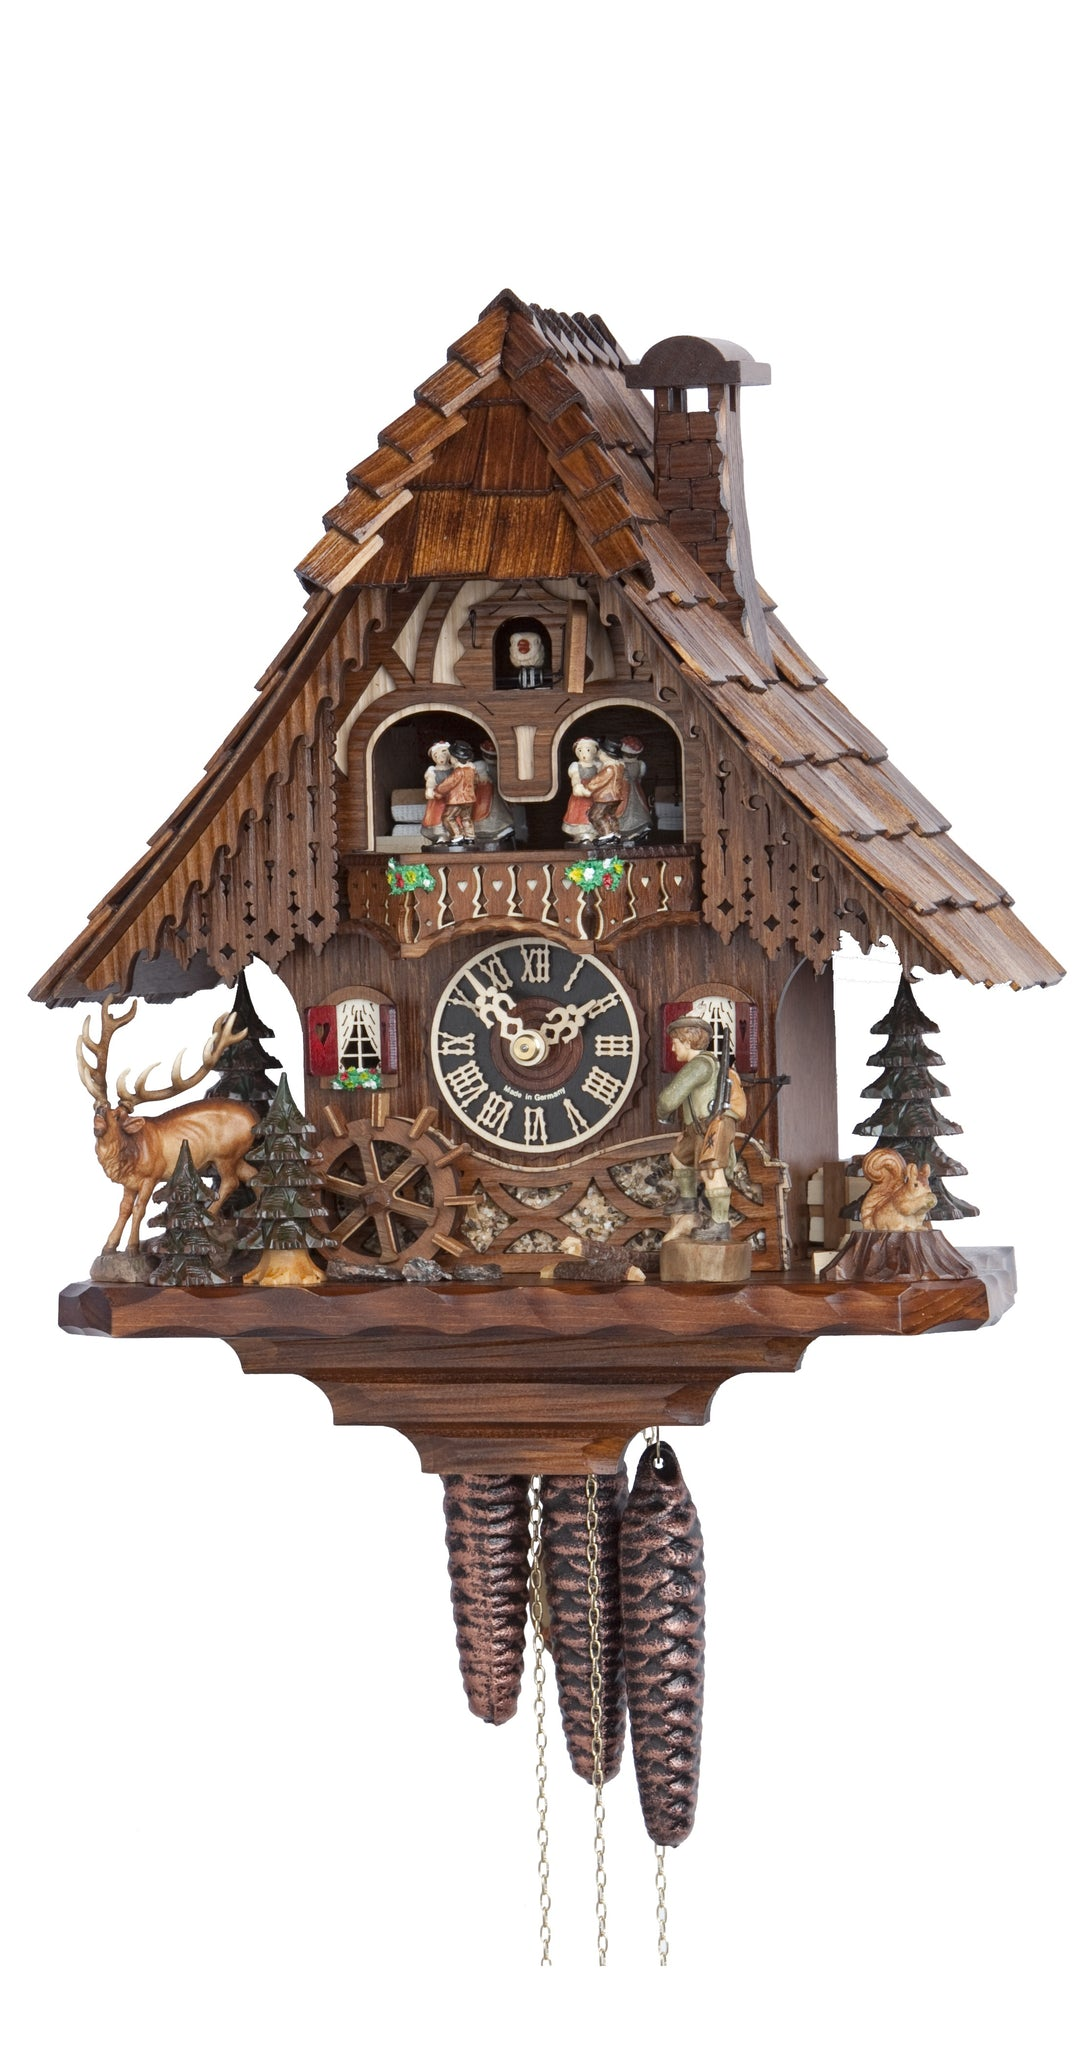 Cuckoo Clock Black Forest Scene with Hunter 1-Day Movement Music - Cuckoo Clock Meister